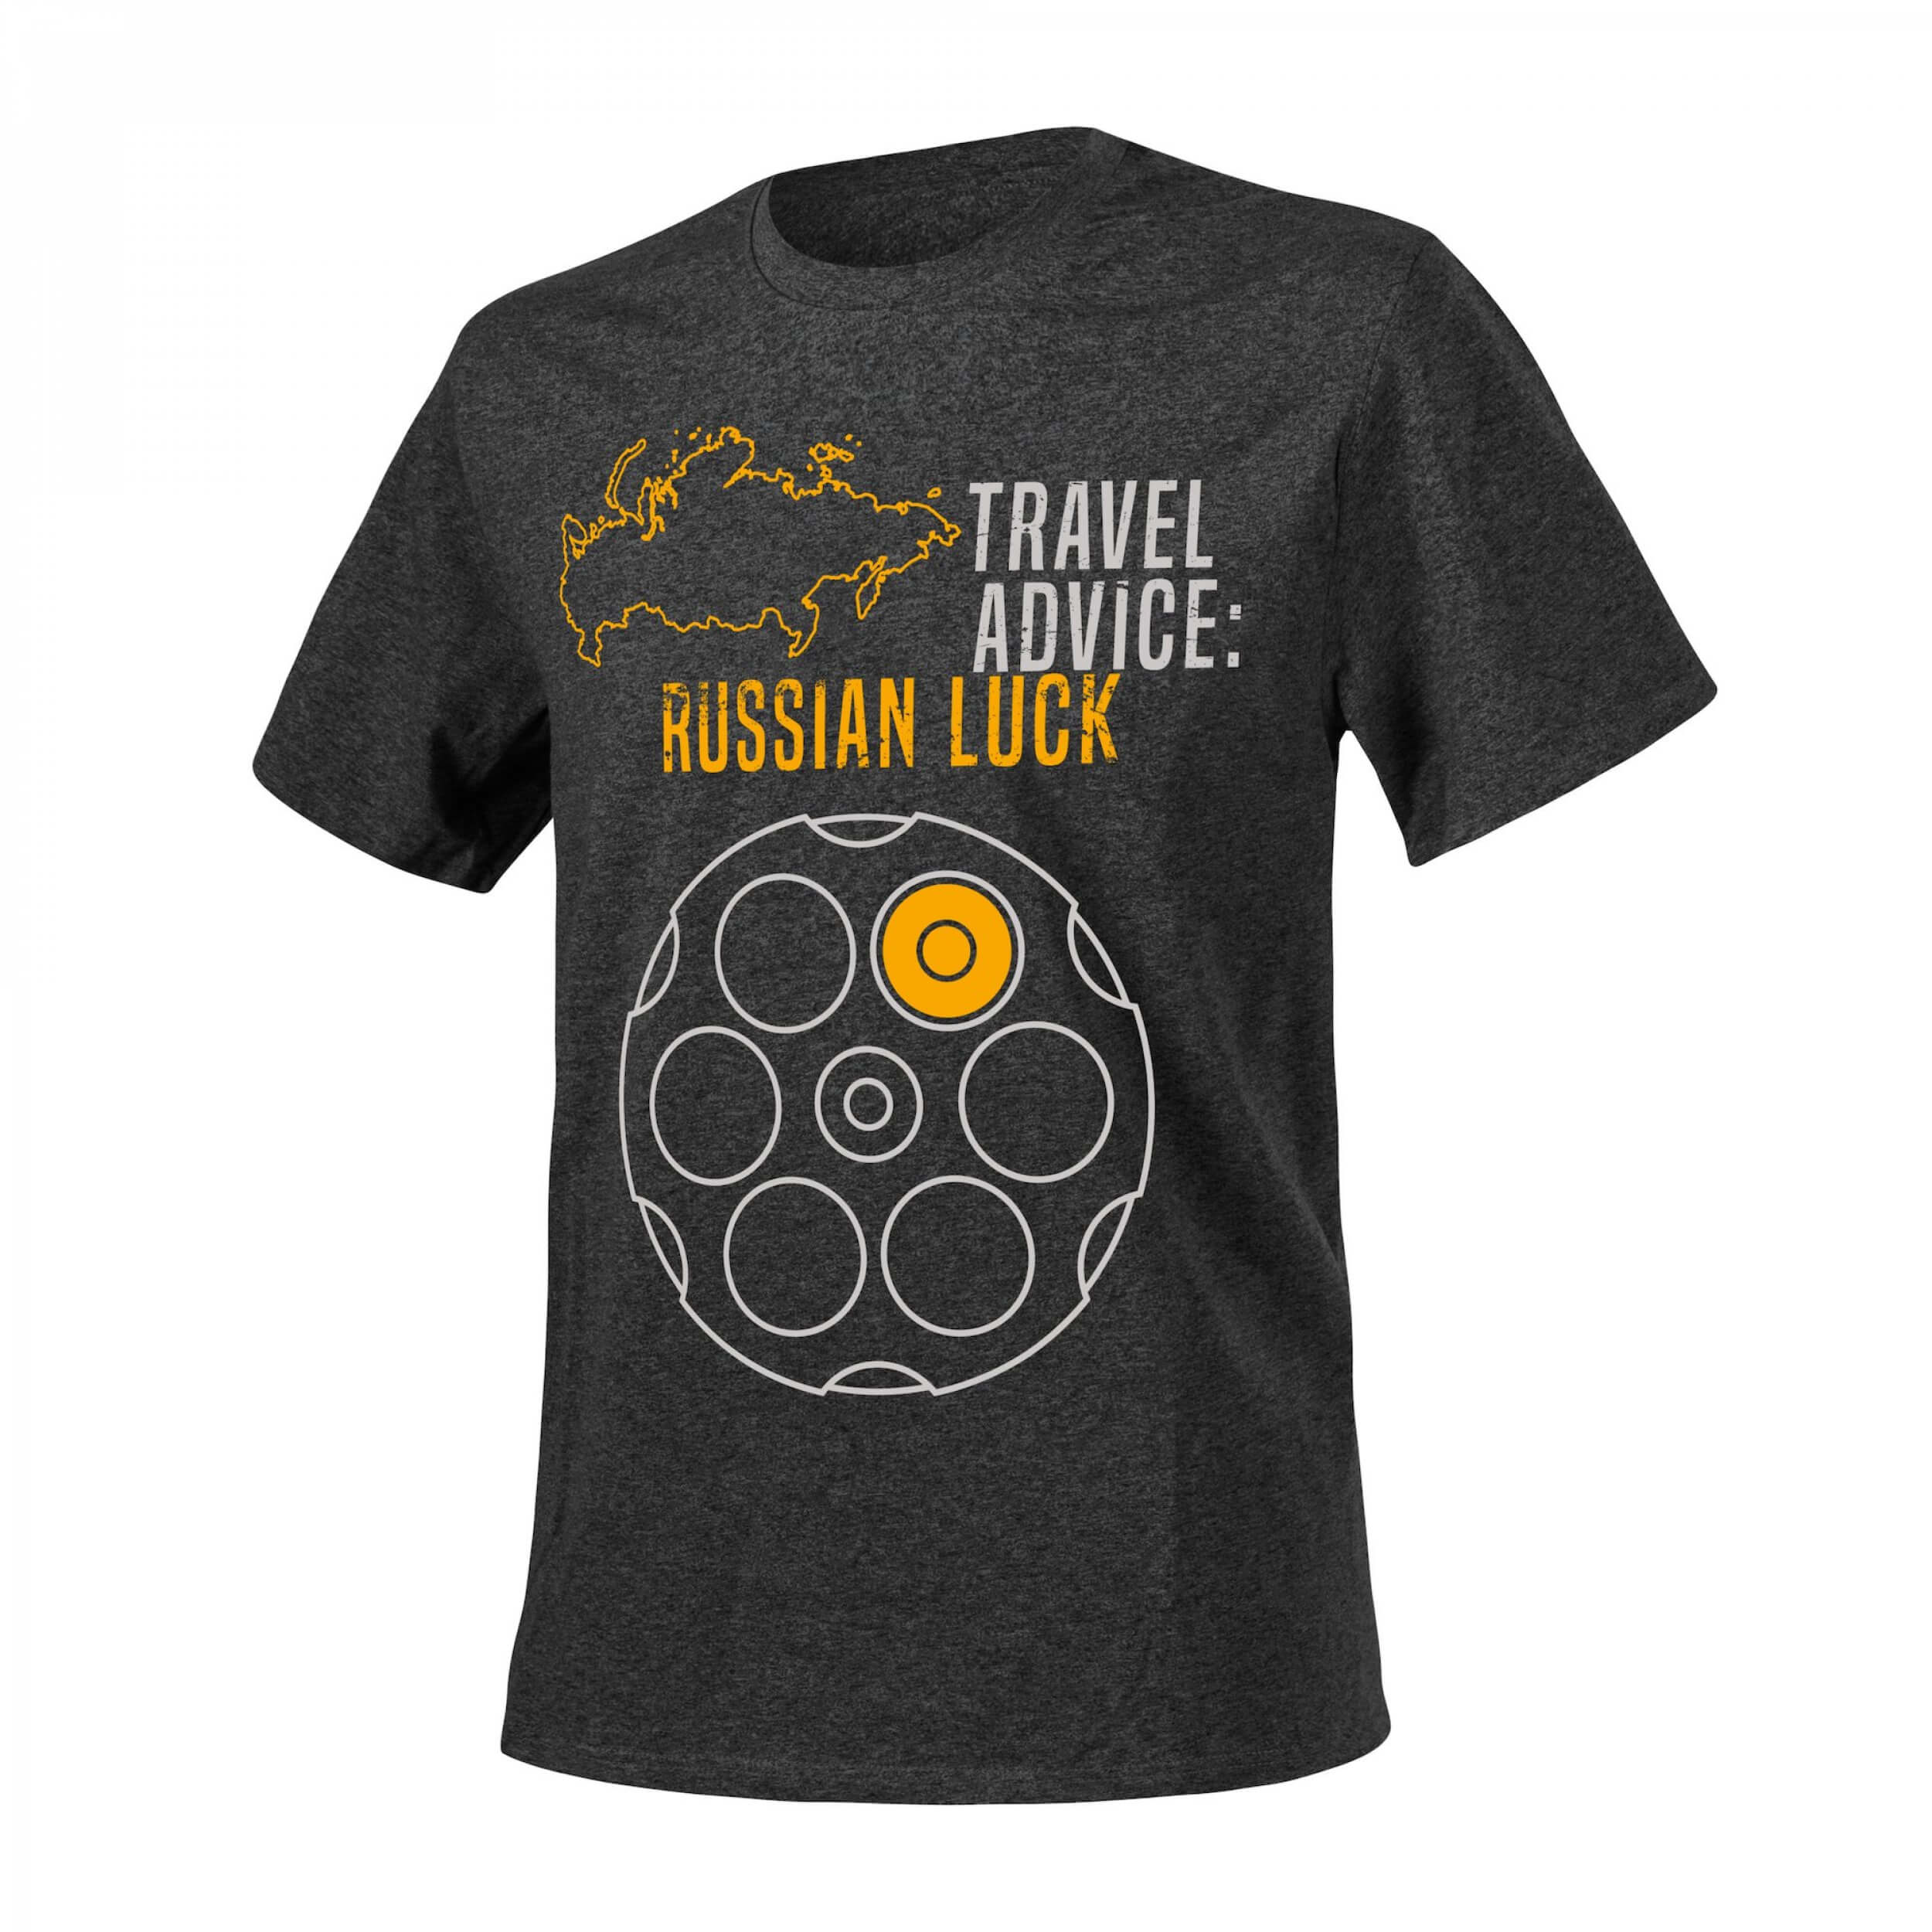 T-Shirt (Travel Advice: Russian Luck) - Melange Black-Grey